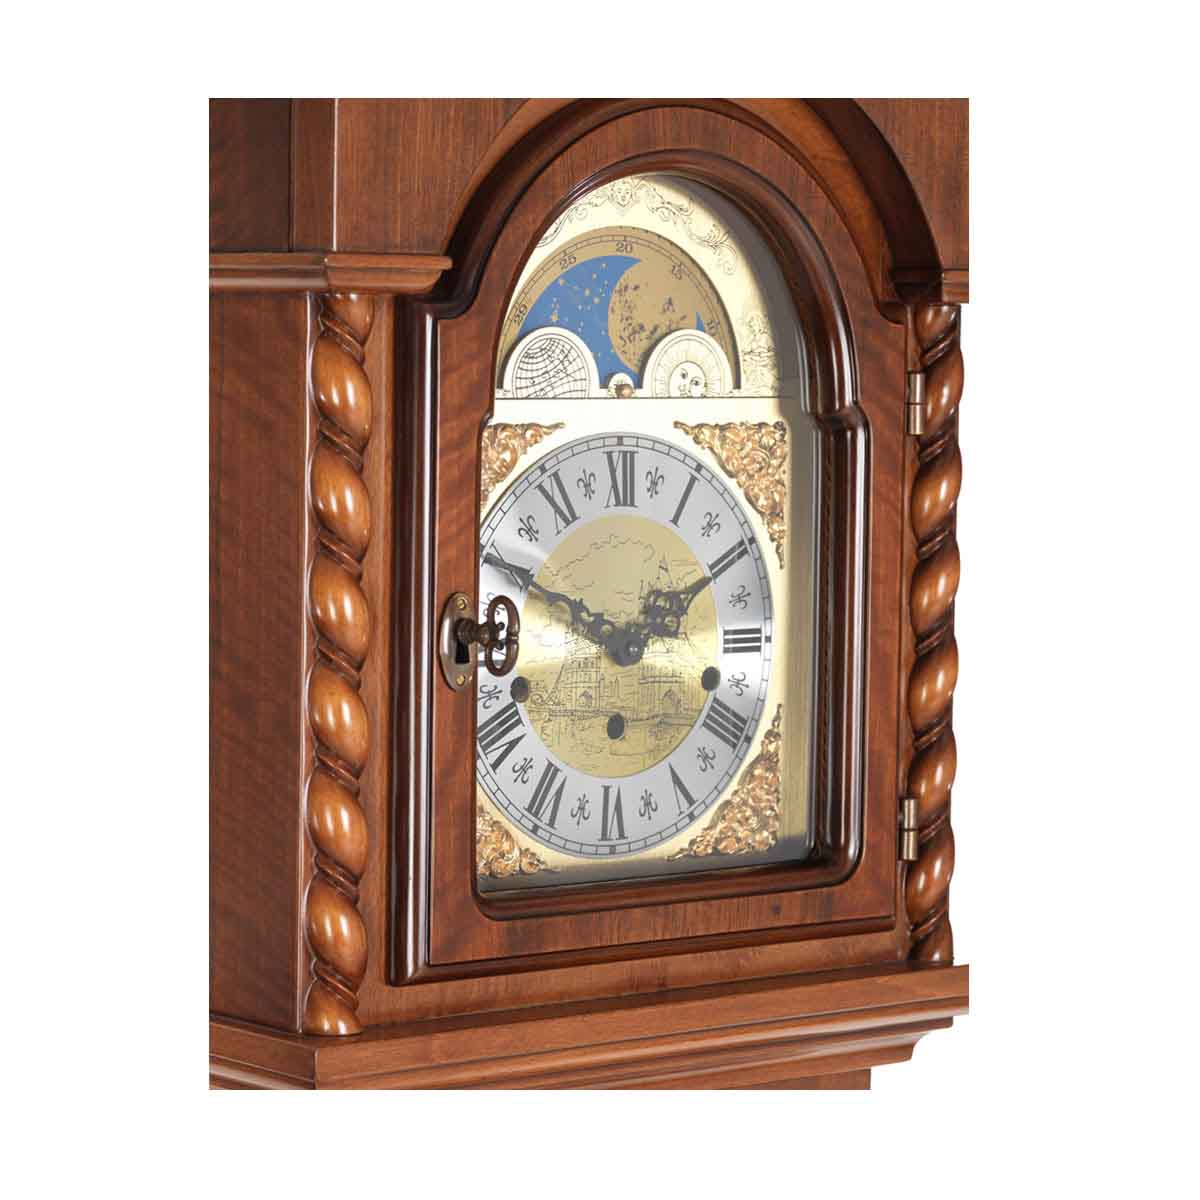 Billib Corinthian Walnut Grandmother Floor Clock